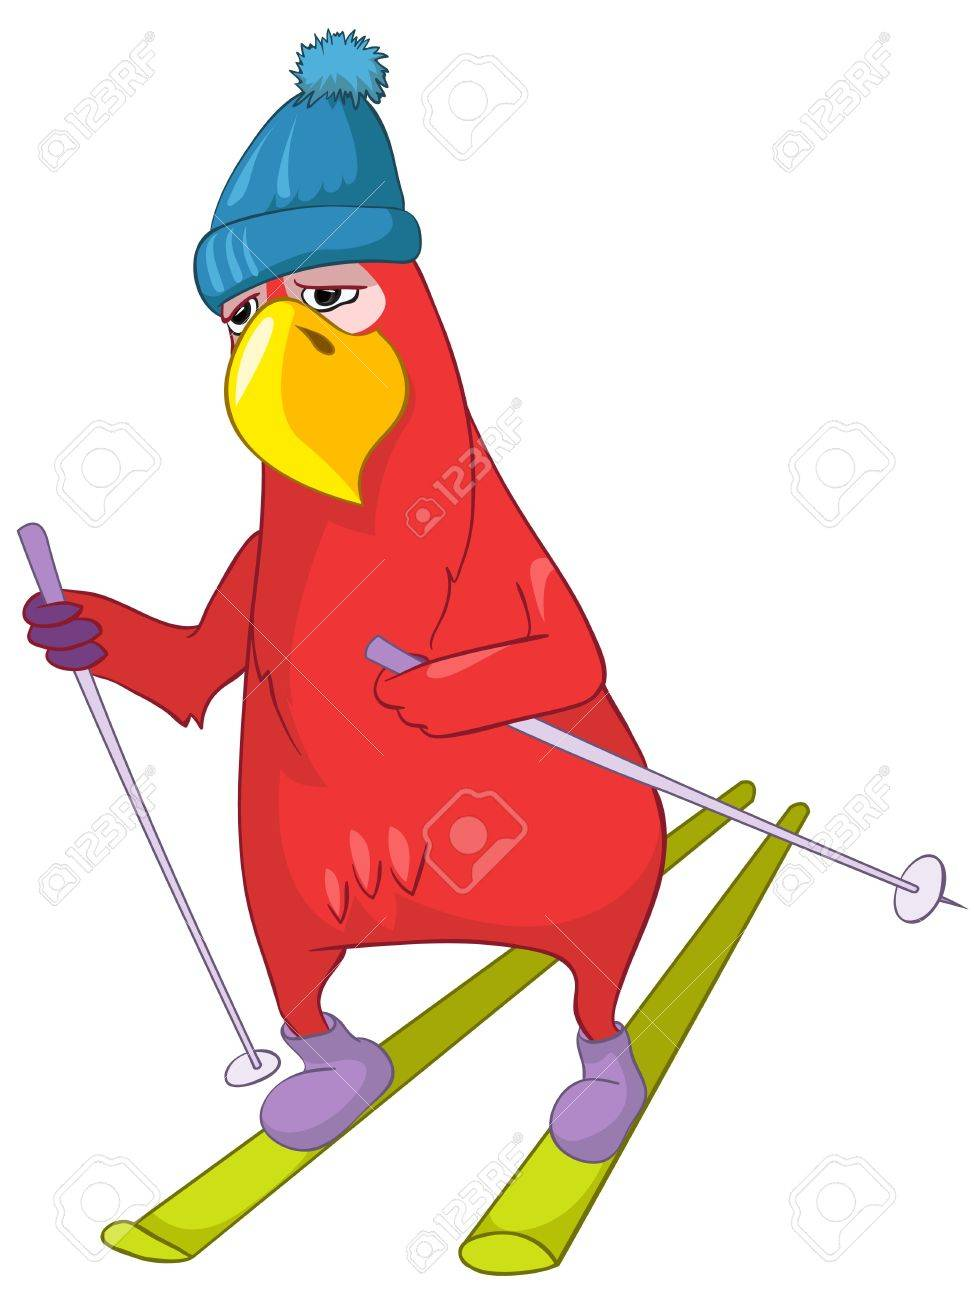 Funny Parrot  Skiing Stock Vector - 13963861